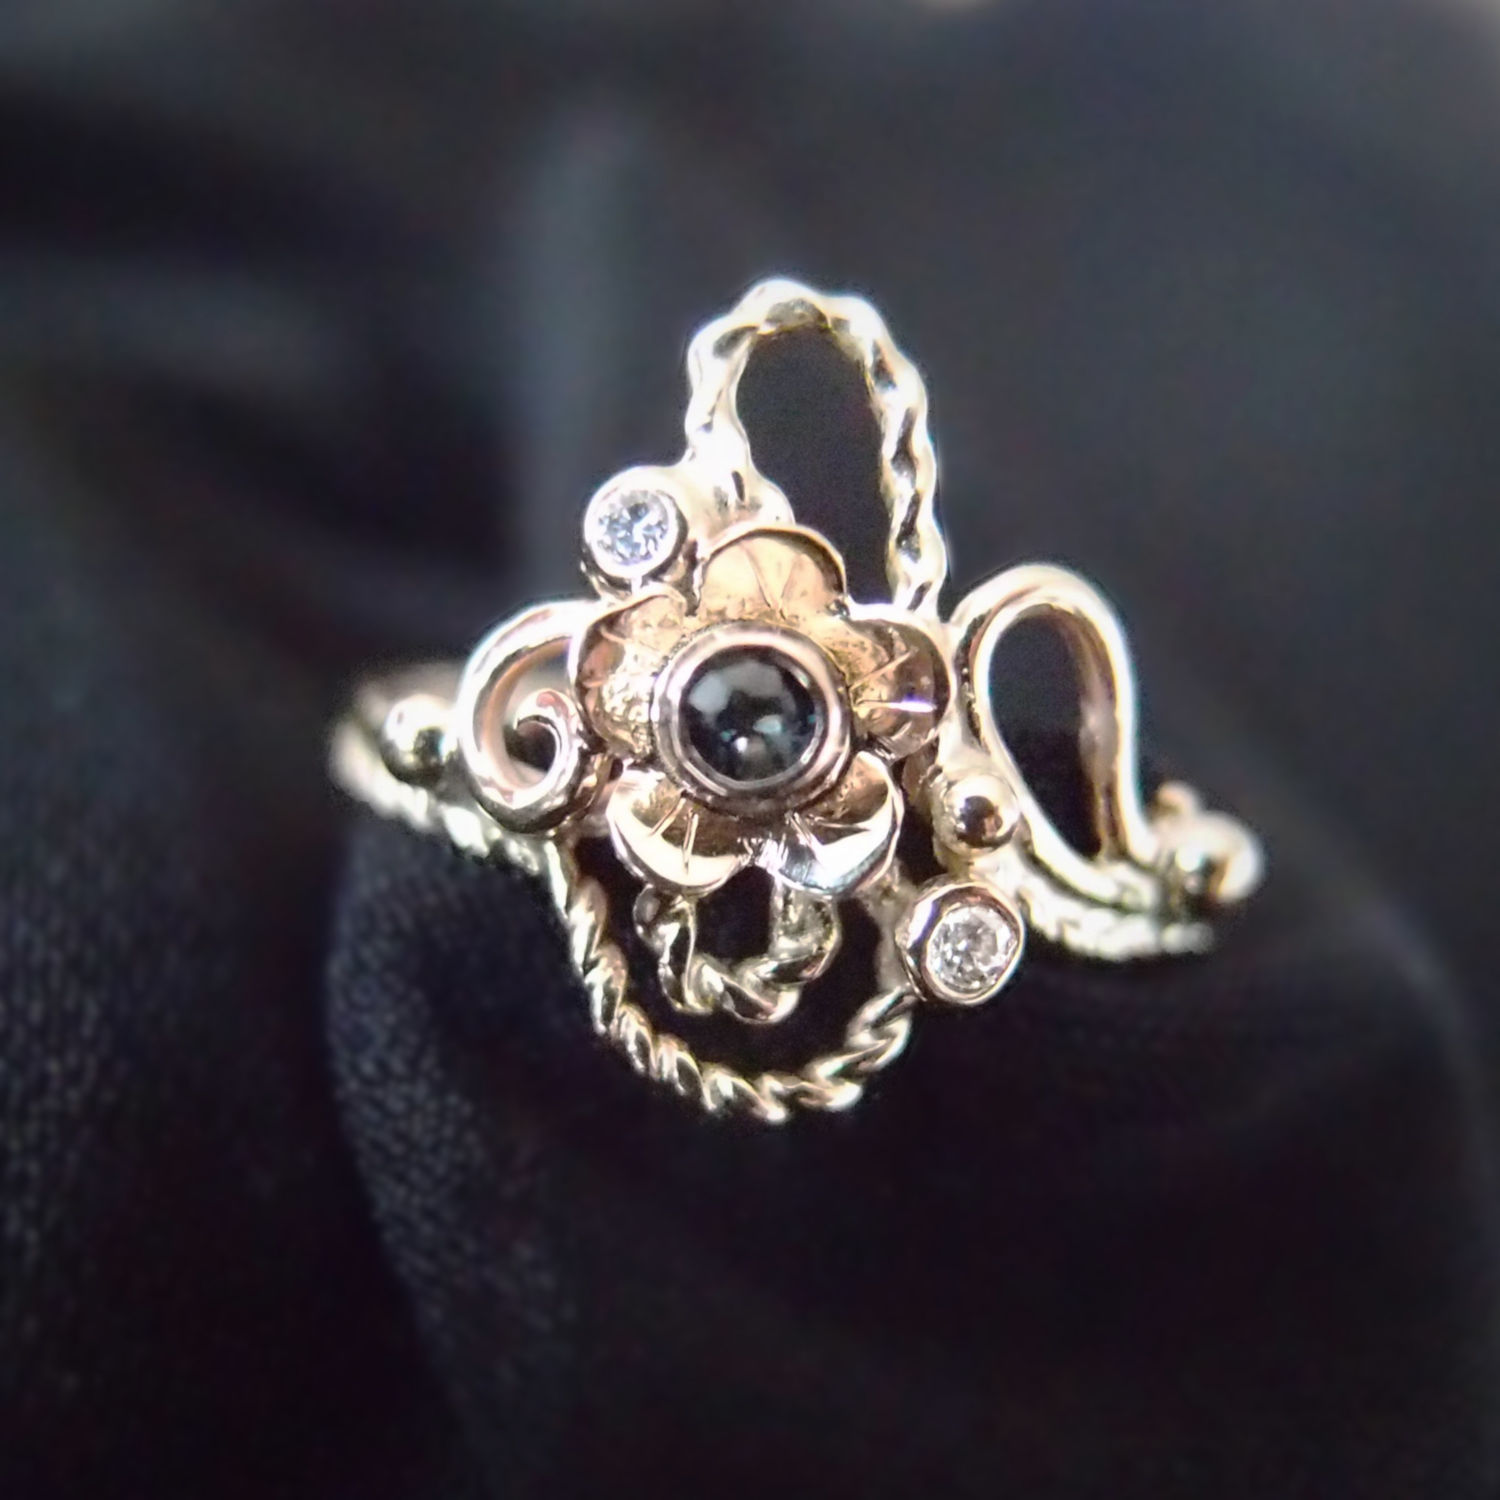 Unique gold ring with sappphire flower inspired by Art Nouveau